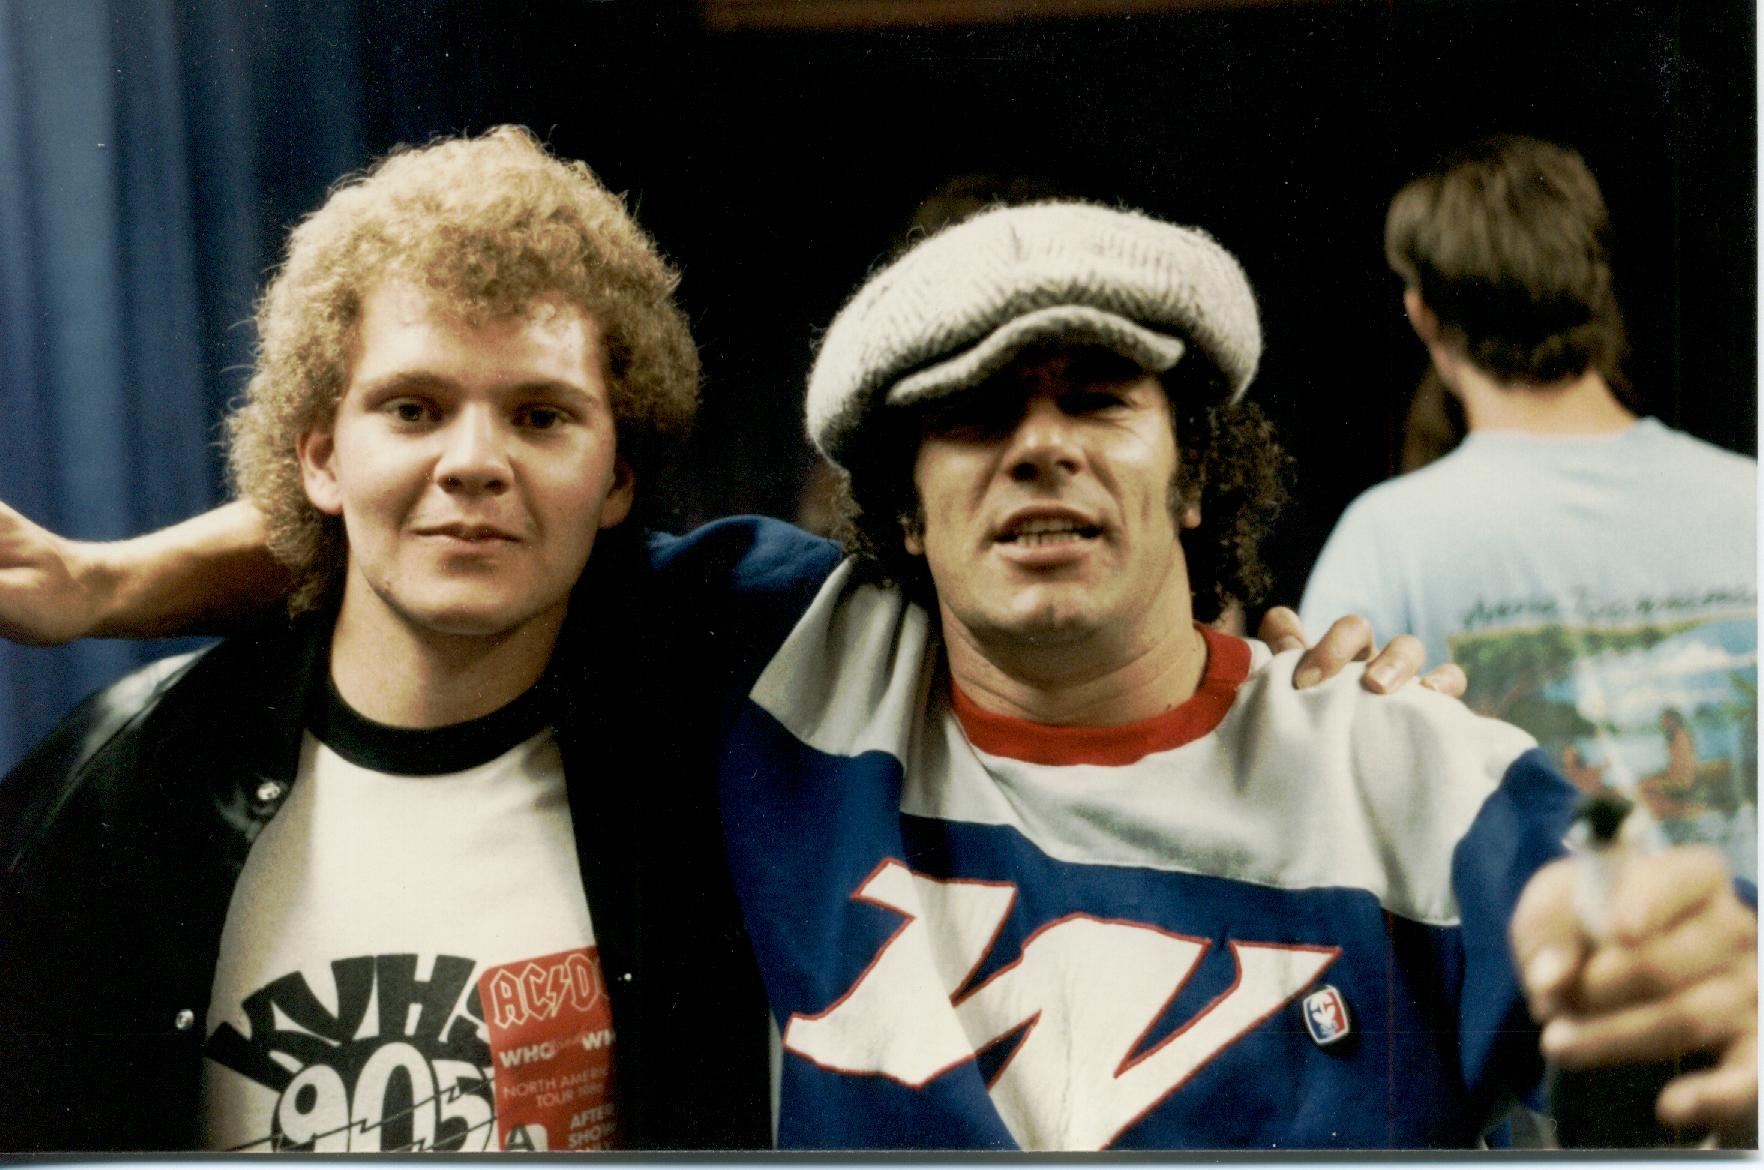 brian johnson singer of rock n roll band acdc with  hypnotist chris cady  missing is  angus young  has no stage fright